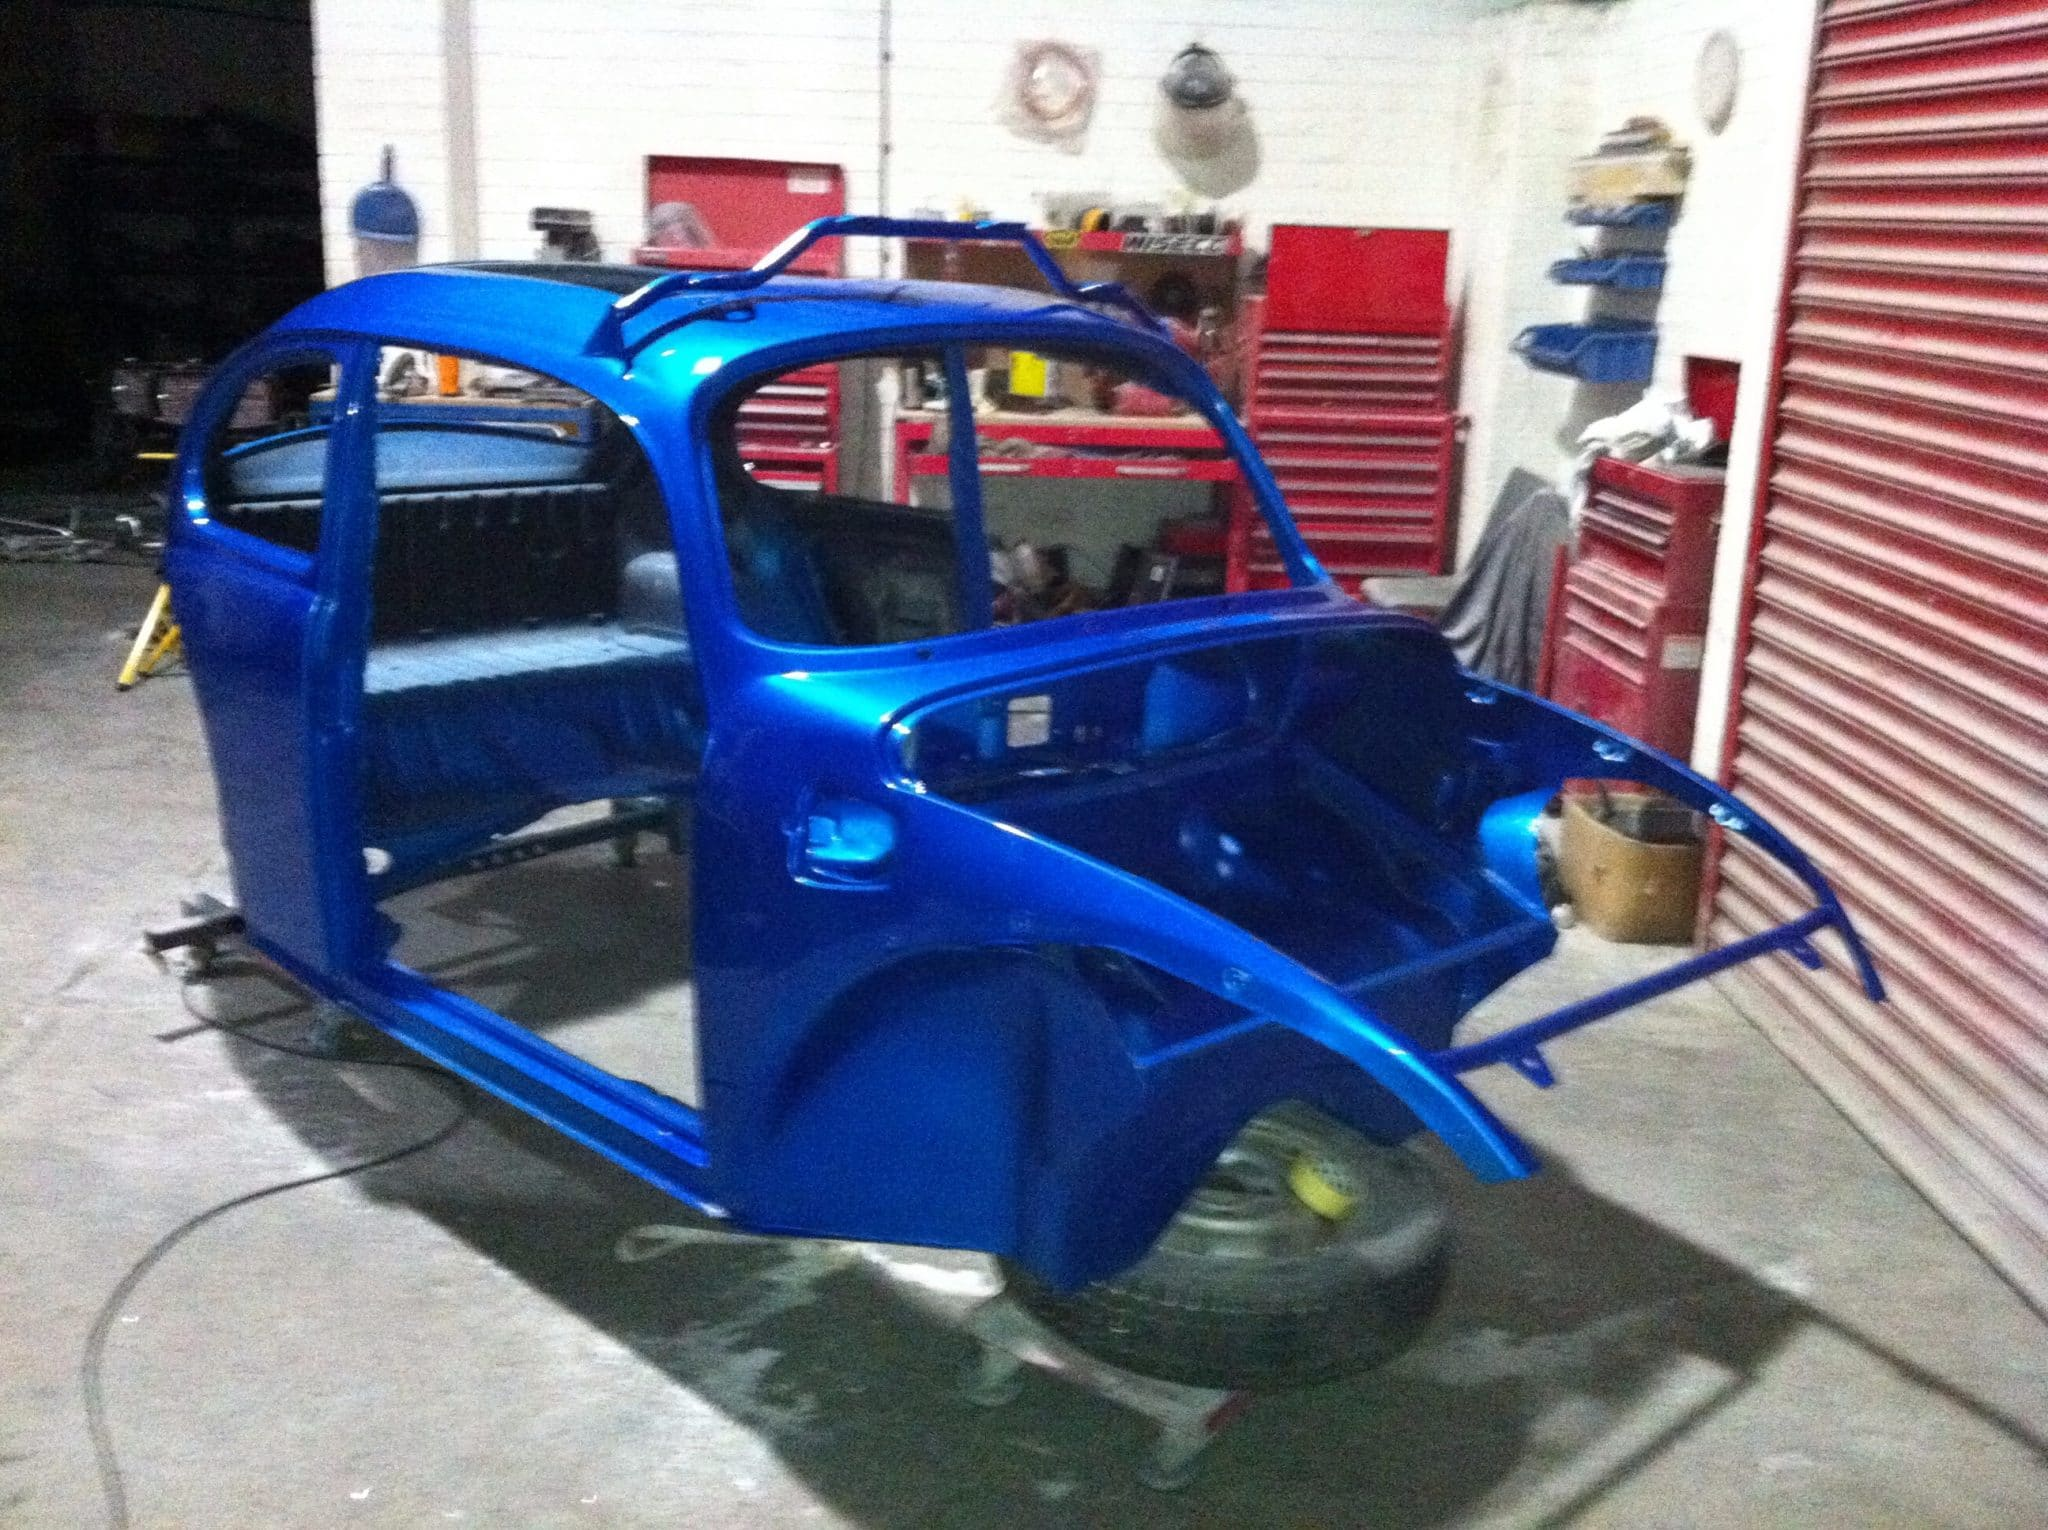 Beetle blue frame - stripped down